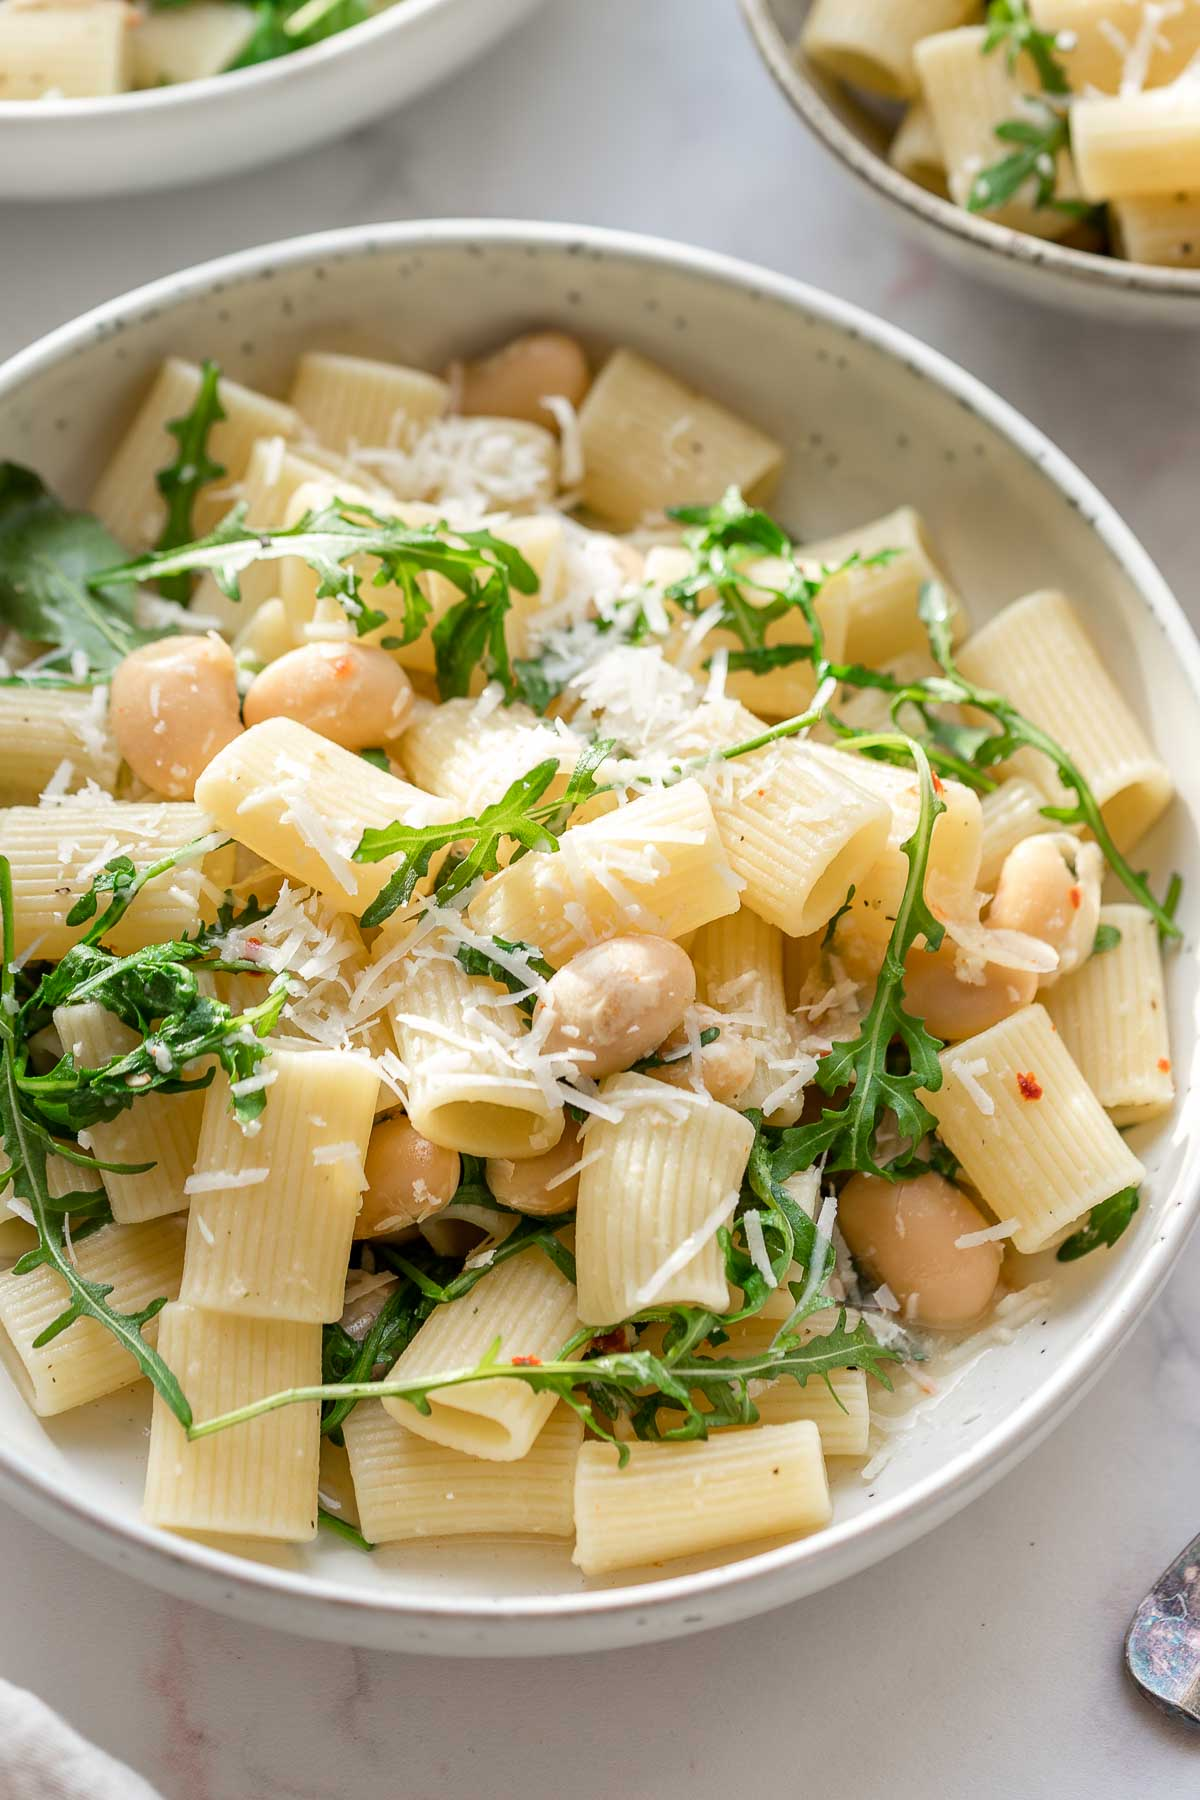 Pasta with White Beans, Arugula and Lemon